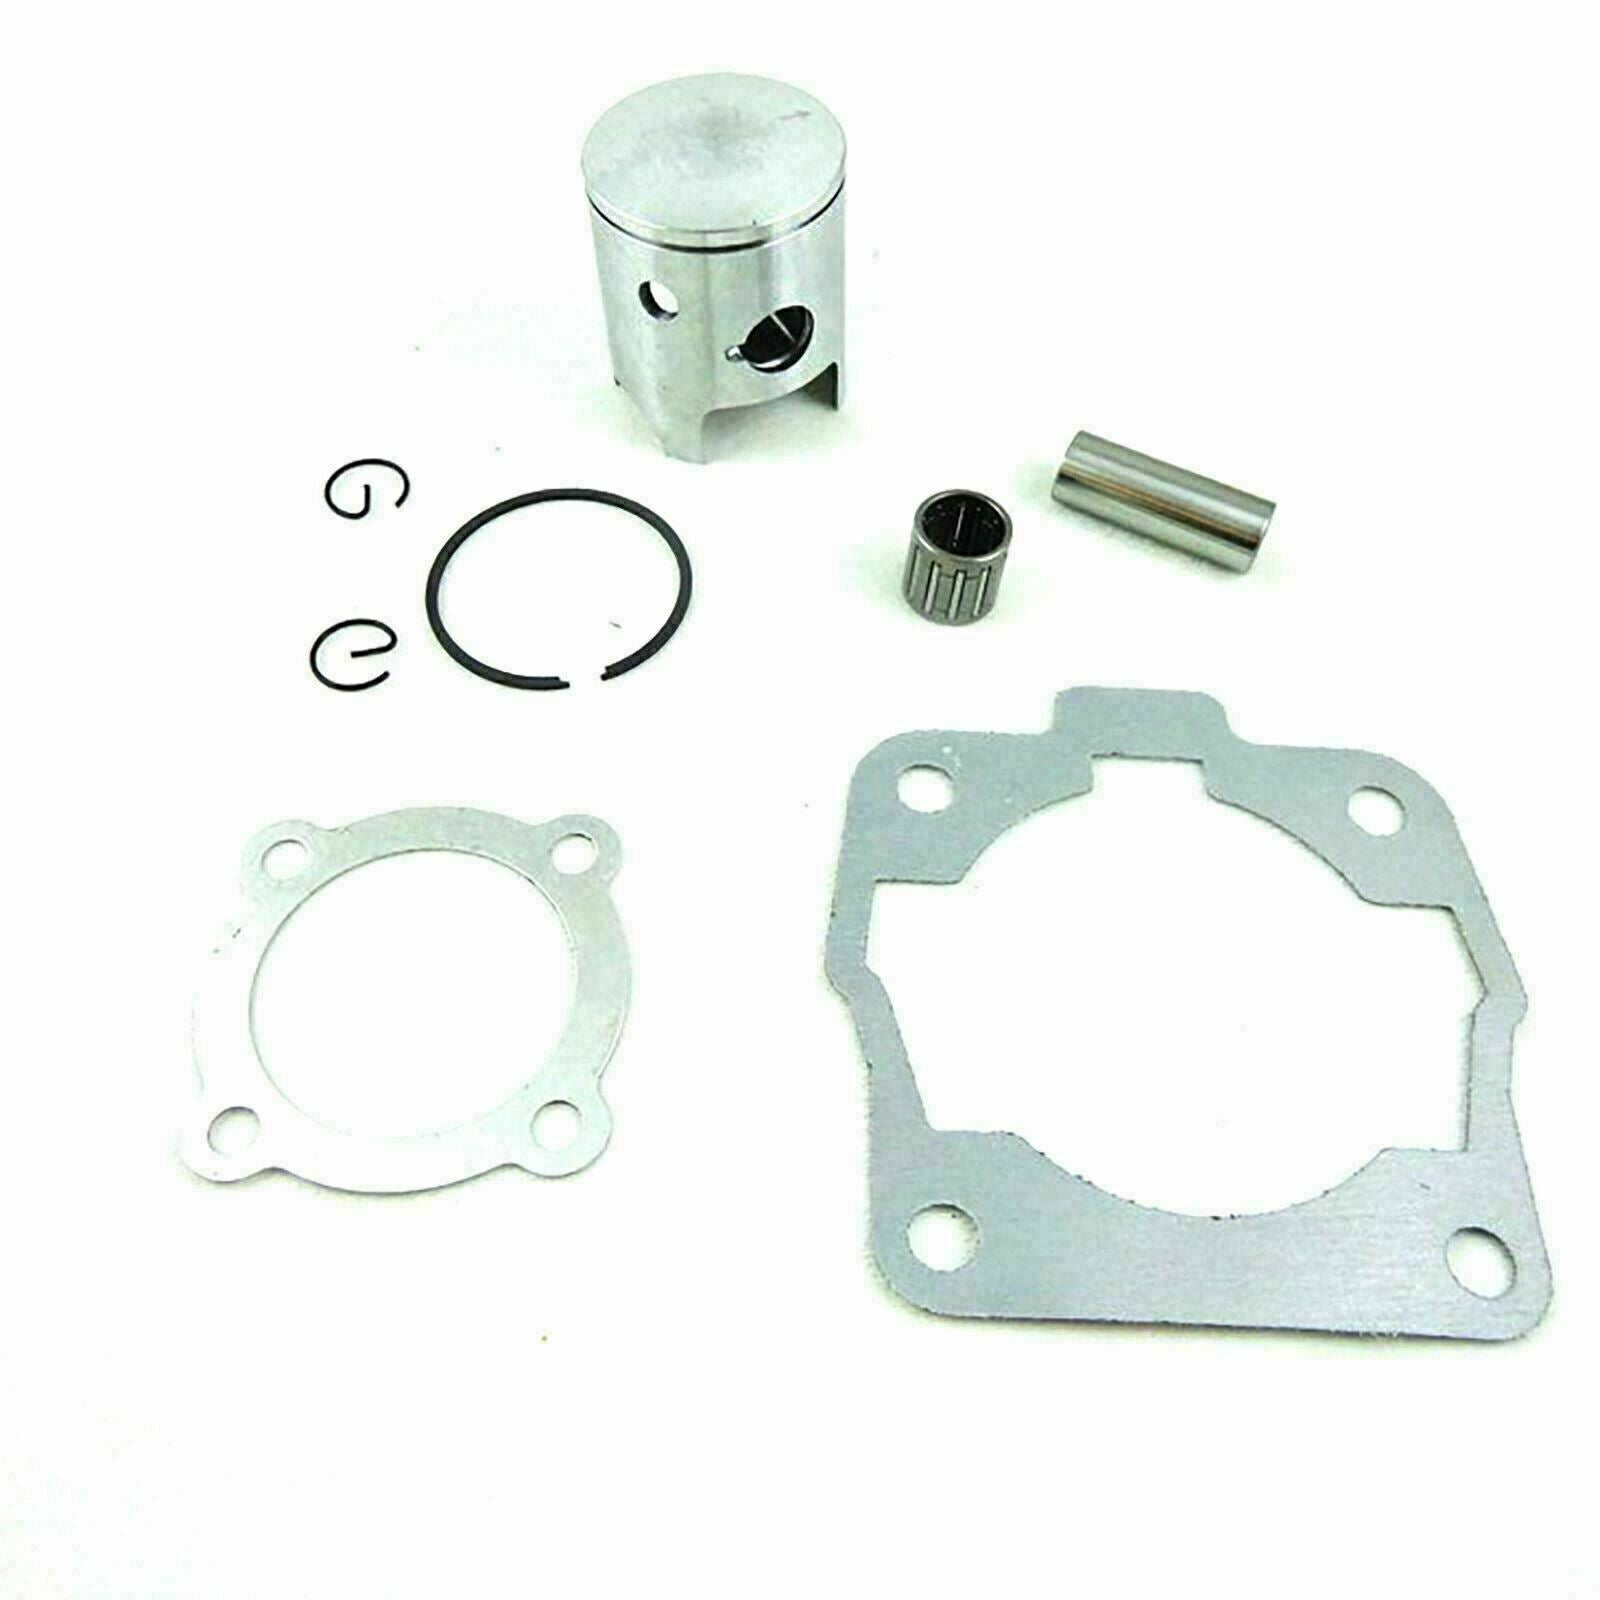 KTM 50 Engine Head Cyclinder Piston Ring Rebuild Kit 4 ktm50 SX JR SR MINI BIKE